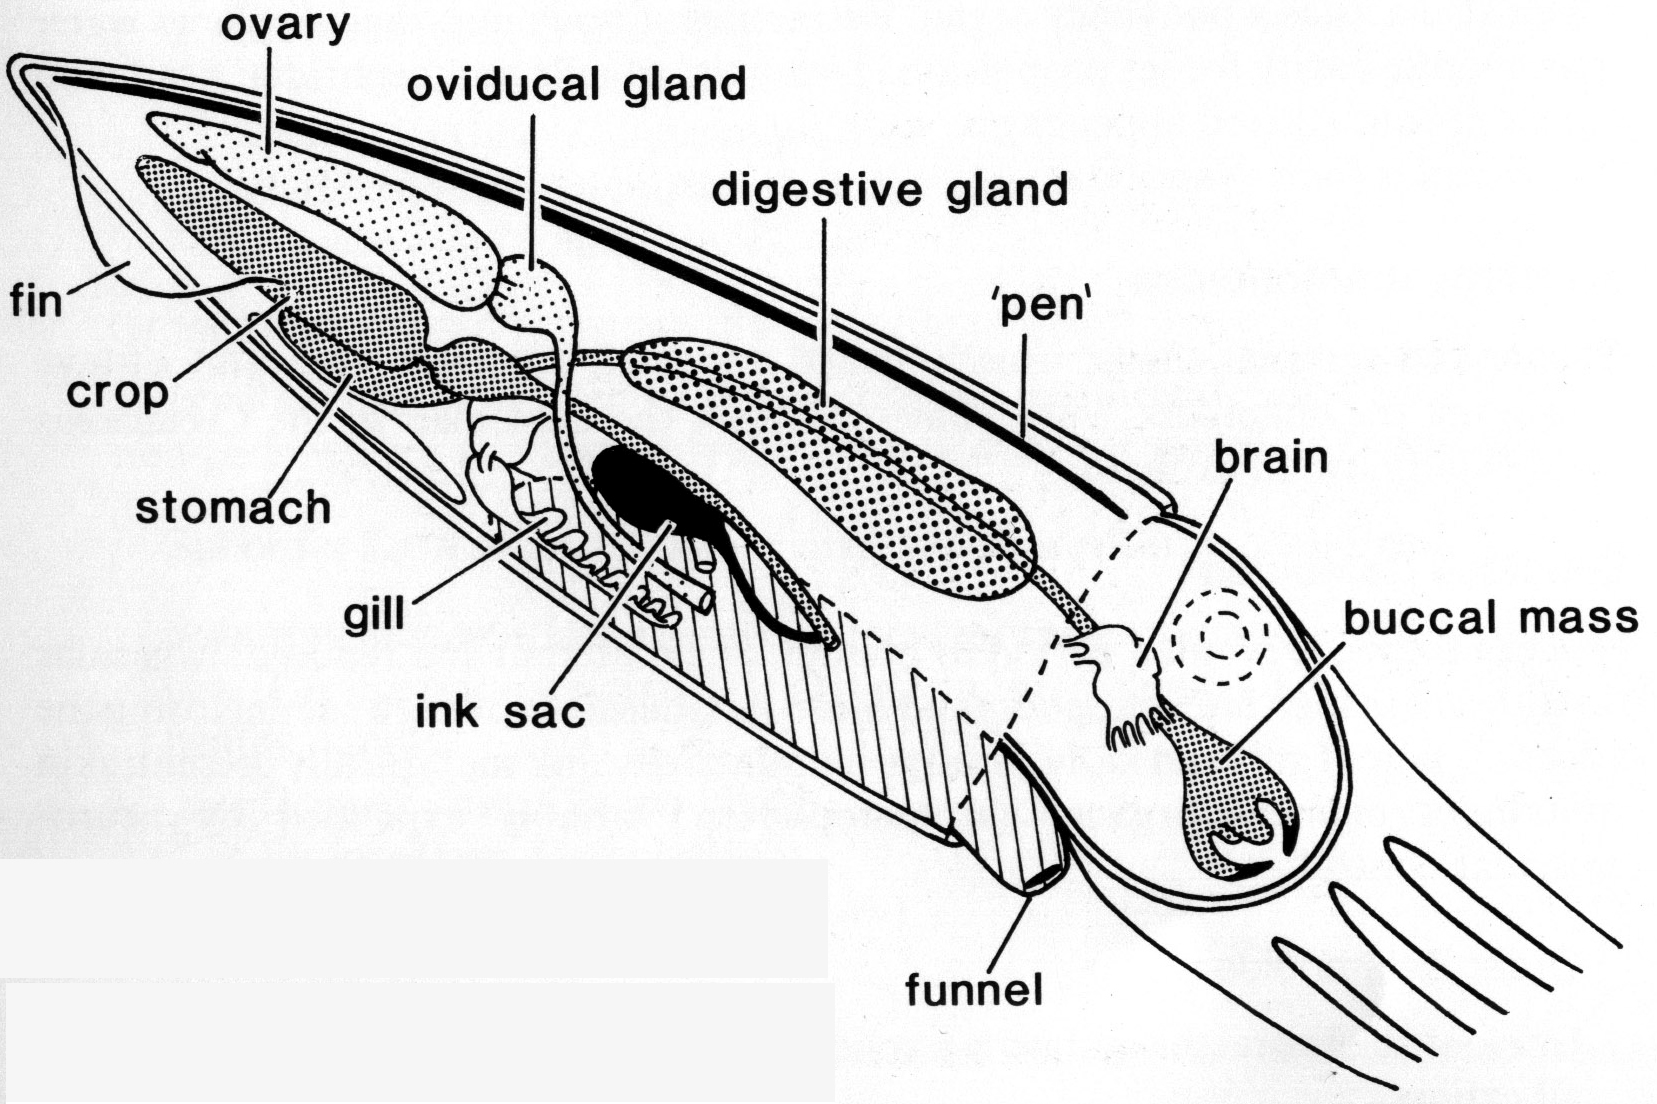 labeled squid external anatomy diagram 1995 saturn sl1 radio wiring youll never think of pens the same uluokala